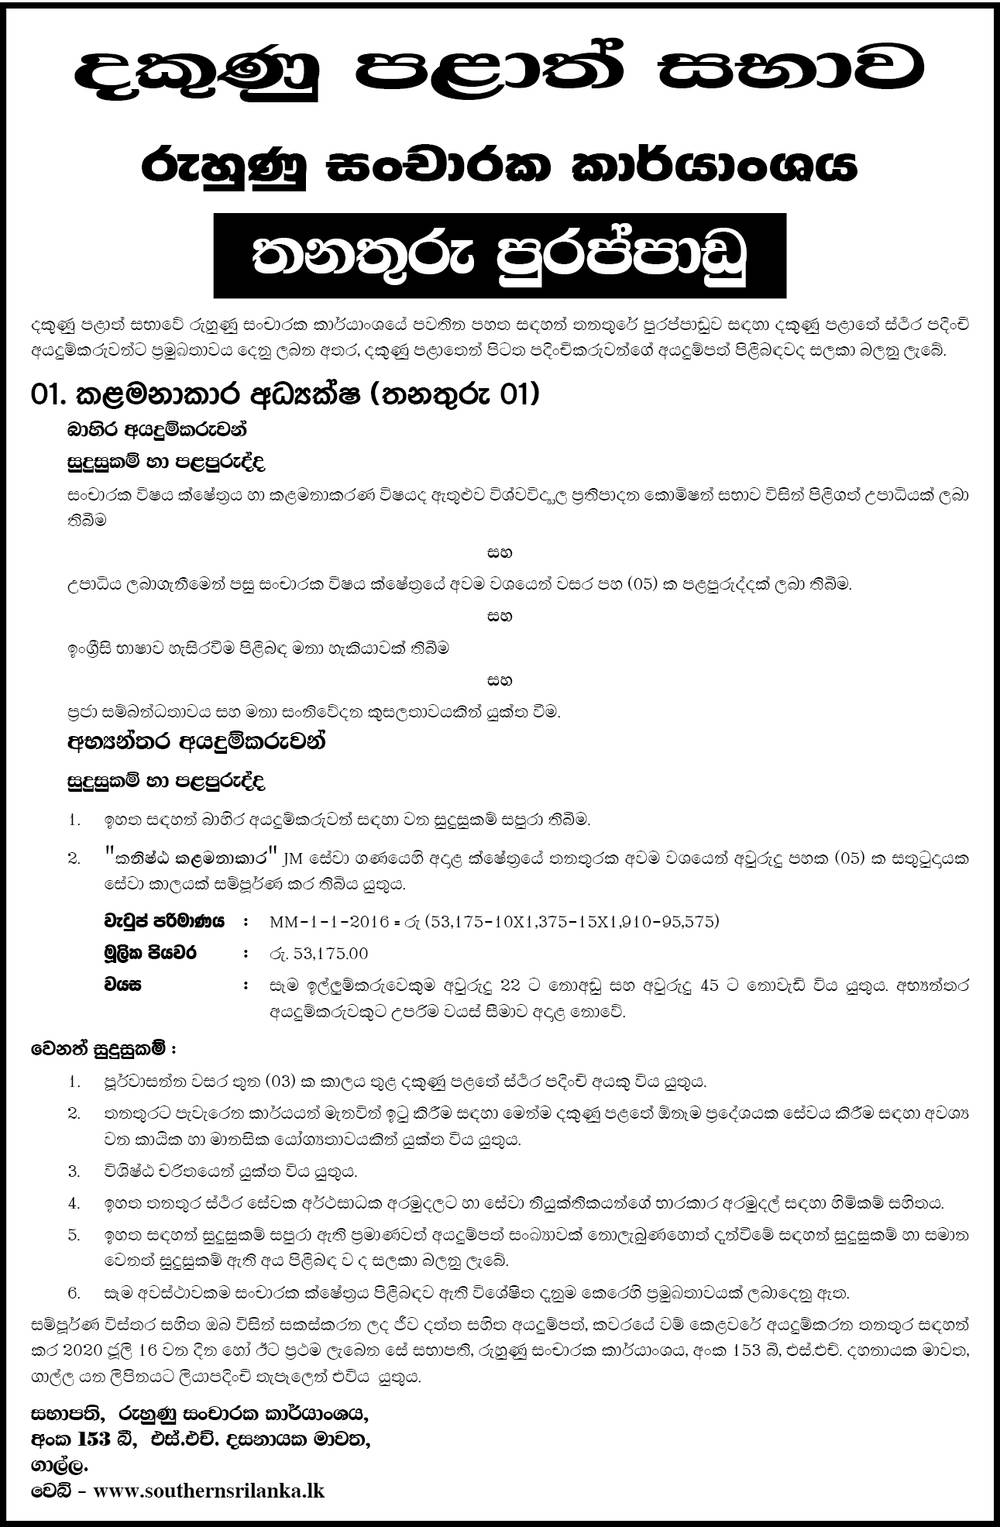 Managing Director - Southern Provincial Council